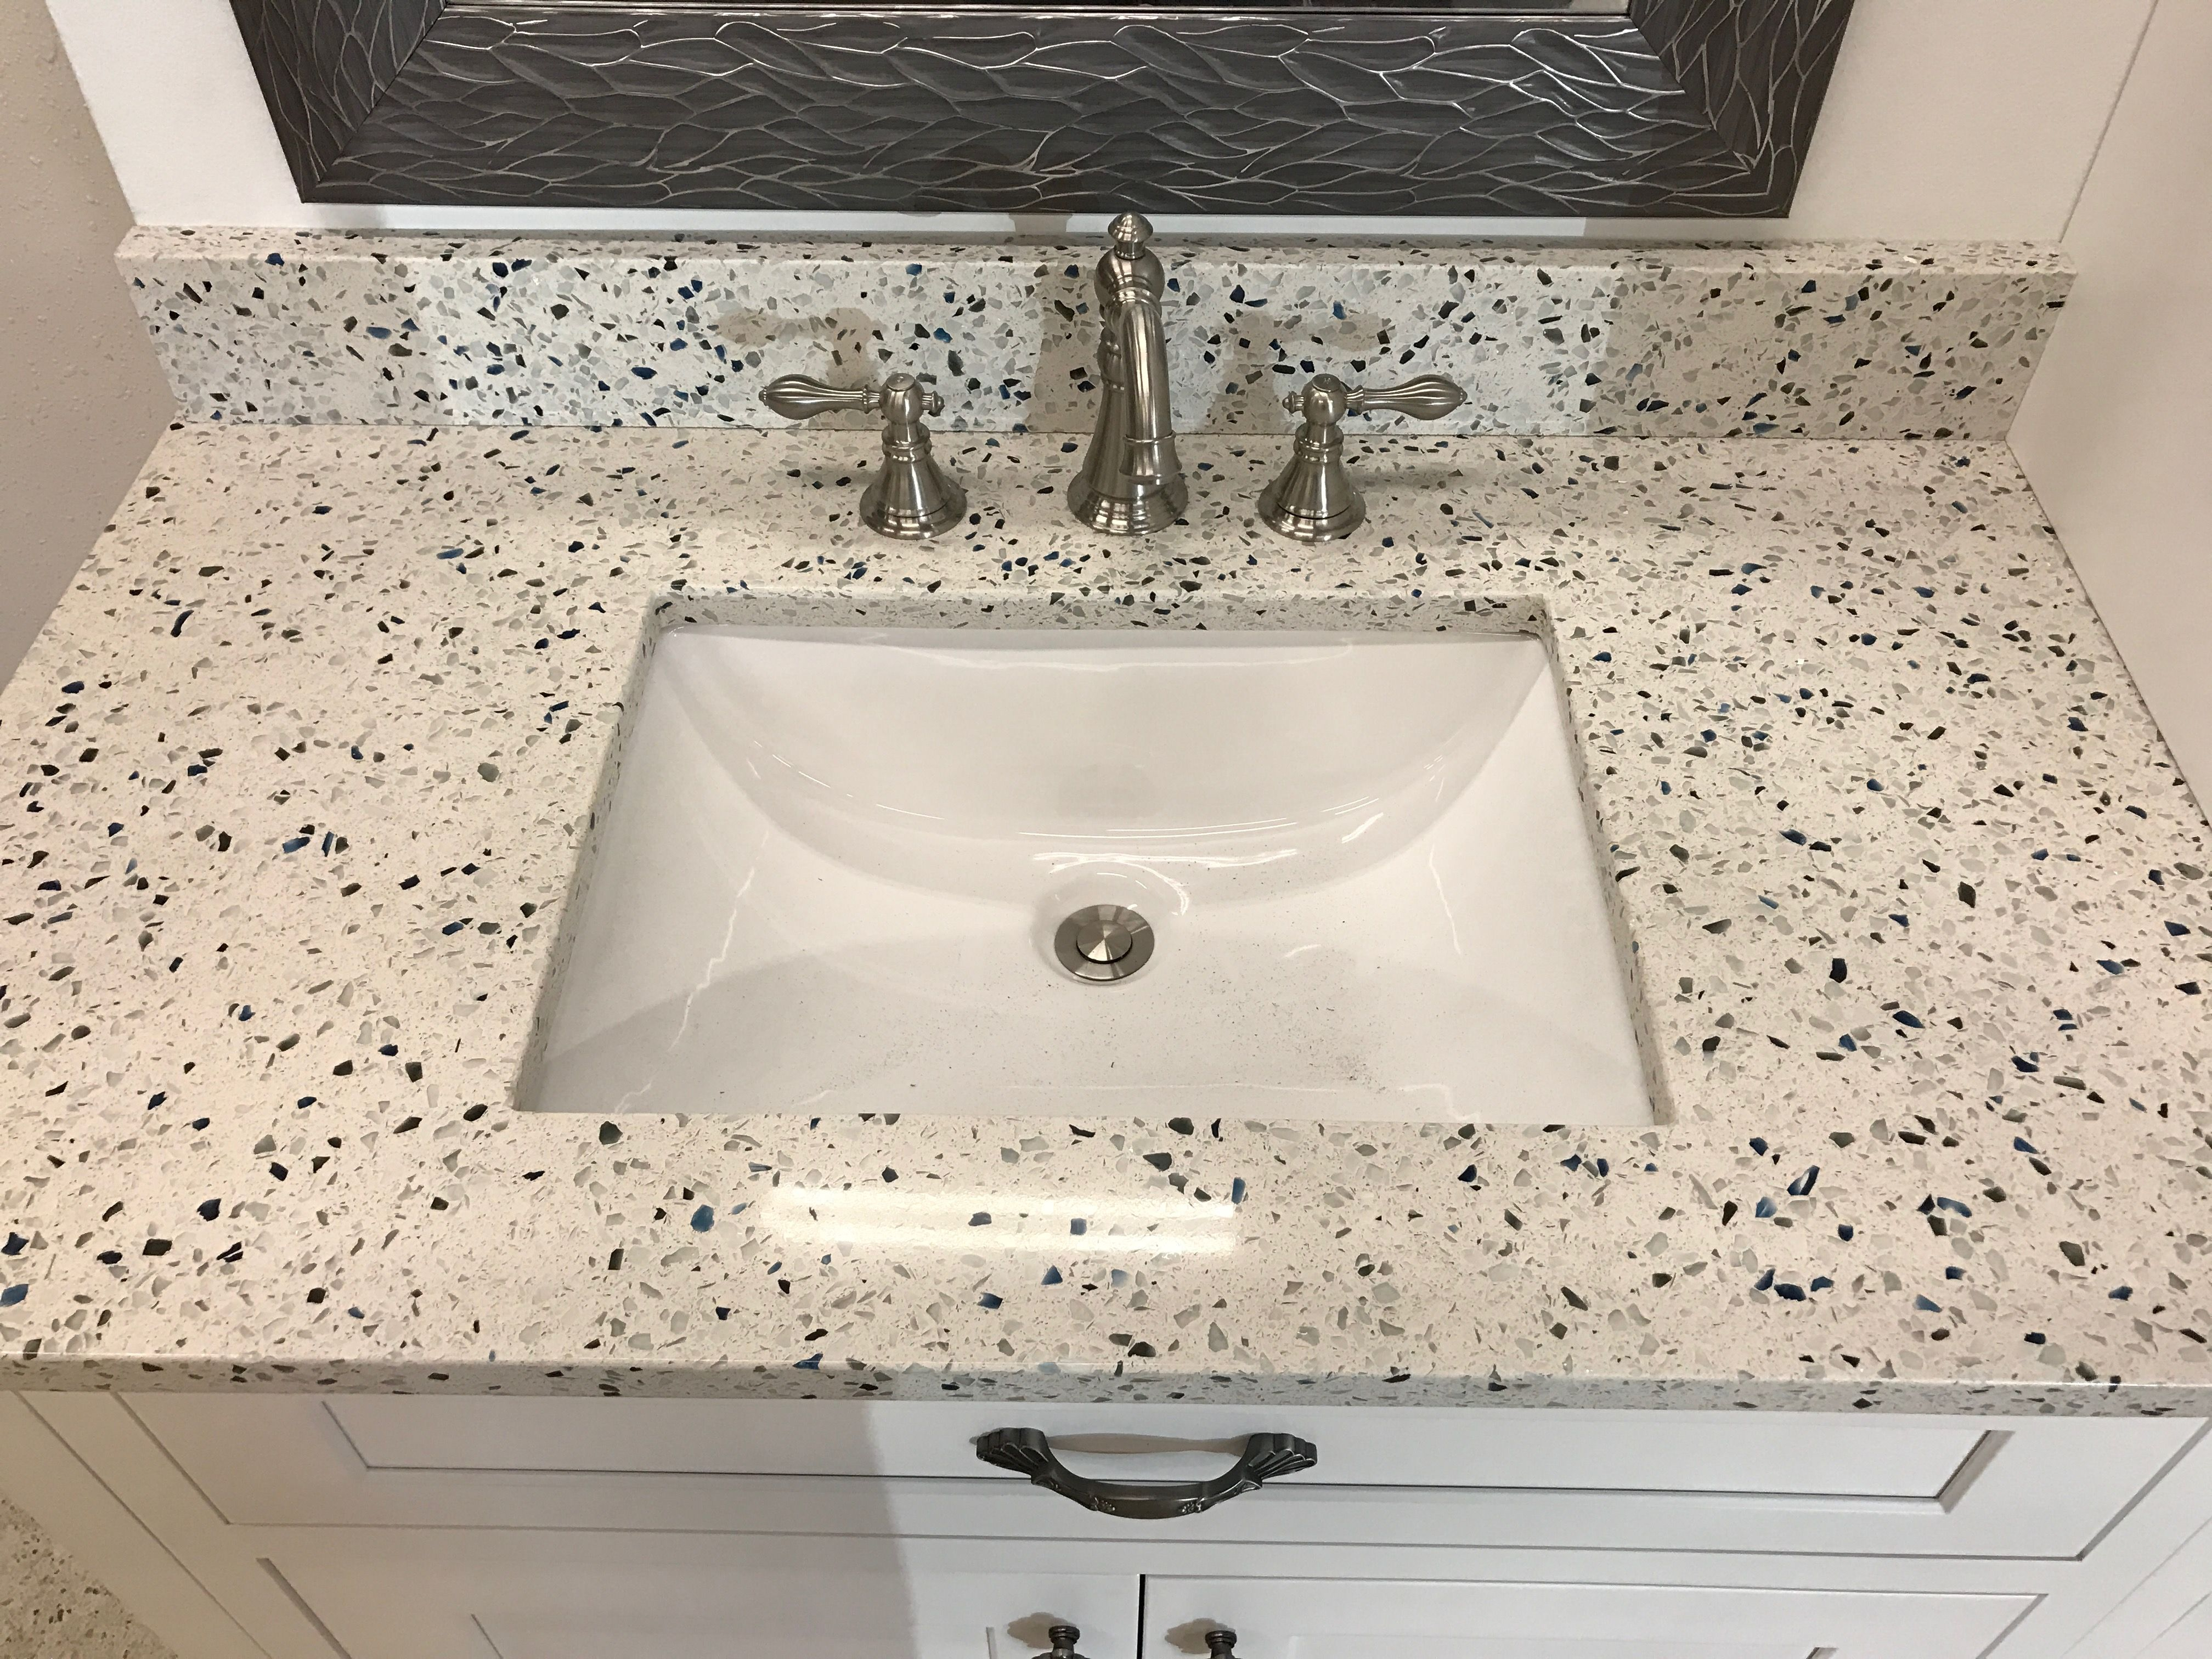 Curava Recycled Glass Countertops This Vanity Comes With Arctic By Curava Recycled Glass